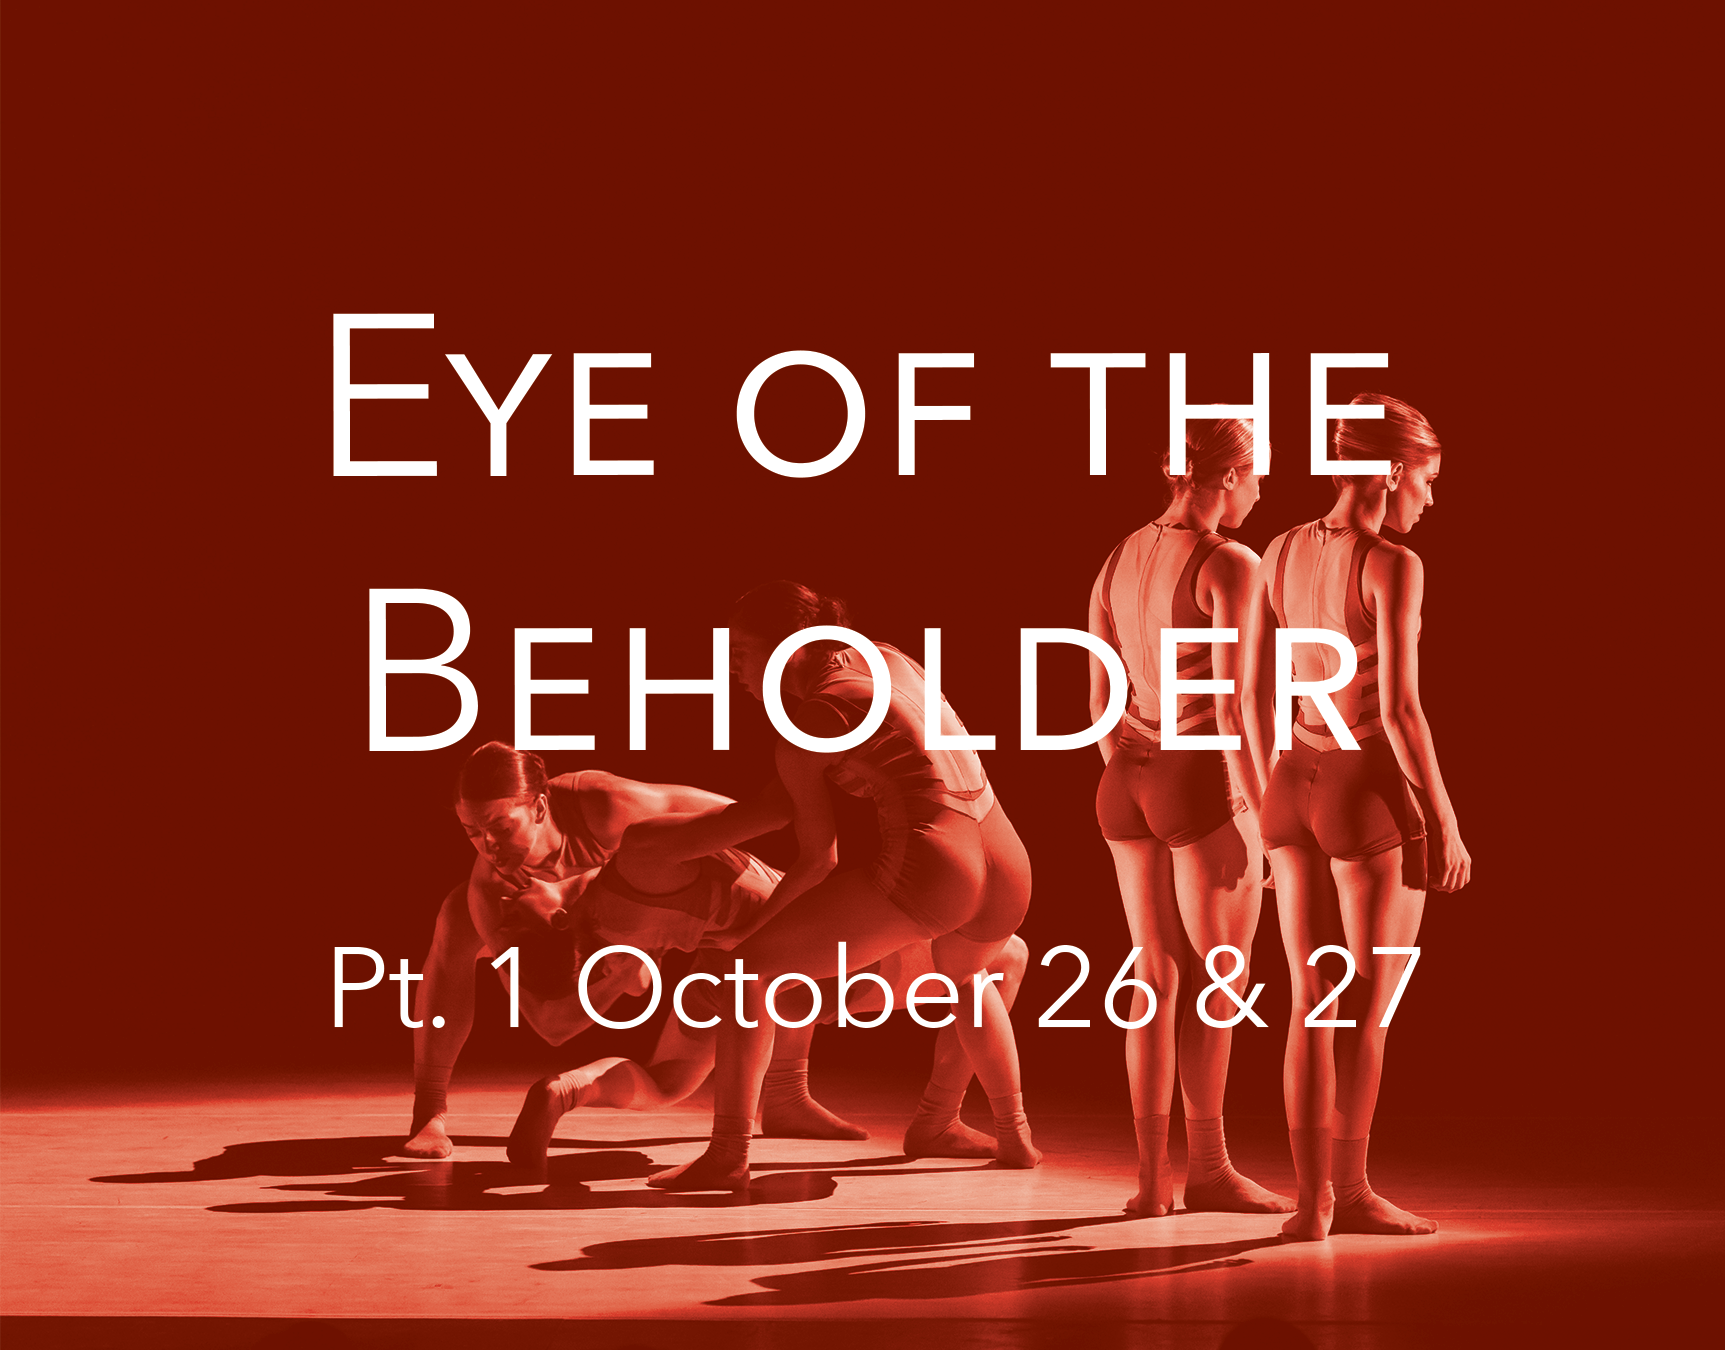 Eye of the Beholder (Pt. 1) - Saturday, October 26 | 8:00pmSunday, October 27 | 2:00pmCould the innate definition of truth and justice lie solely in the eye of the beholder? Join EDD Artistic Director, Stephanie Pizzo, and the acclaimed EDD dancers as they investigate perspective...how it shapes judgment and impacts culture and society. This two-part, site-specific work, at two uniquely different venues, Oakland University's Varner Recital Hall and the Lightbox in Detroit, reimagines what we think of as performance space. Watch contemporary dance transform both environments to create two unique perspectives with a common theme. Join in the artistic process for an interactive experience that will impact the perspective of Part 2 at the Lightbox. The program also features the mesmerizing premieres of dances created by renowned choreographers, Christian Denice and Baira.Oakland University371 Varner Dr, Rochester, MI 48309